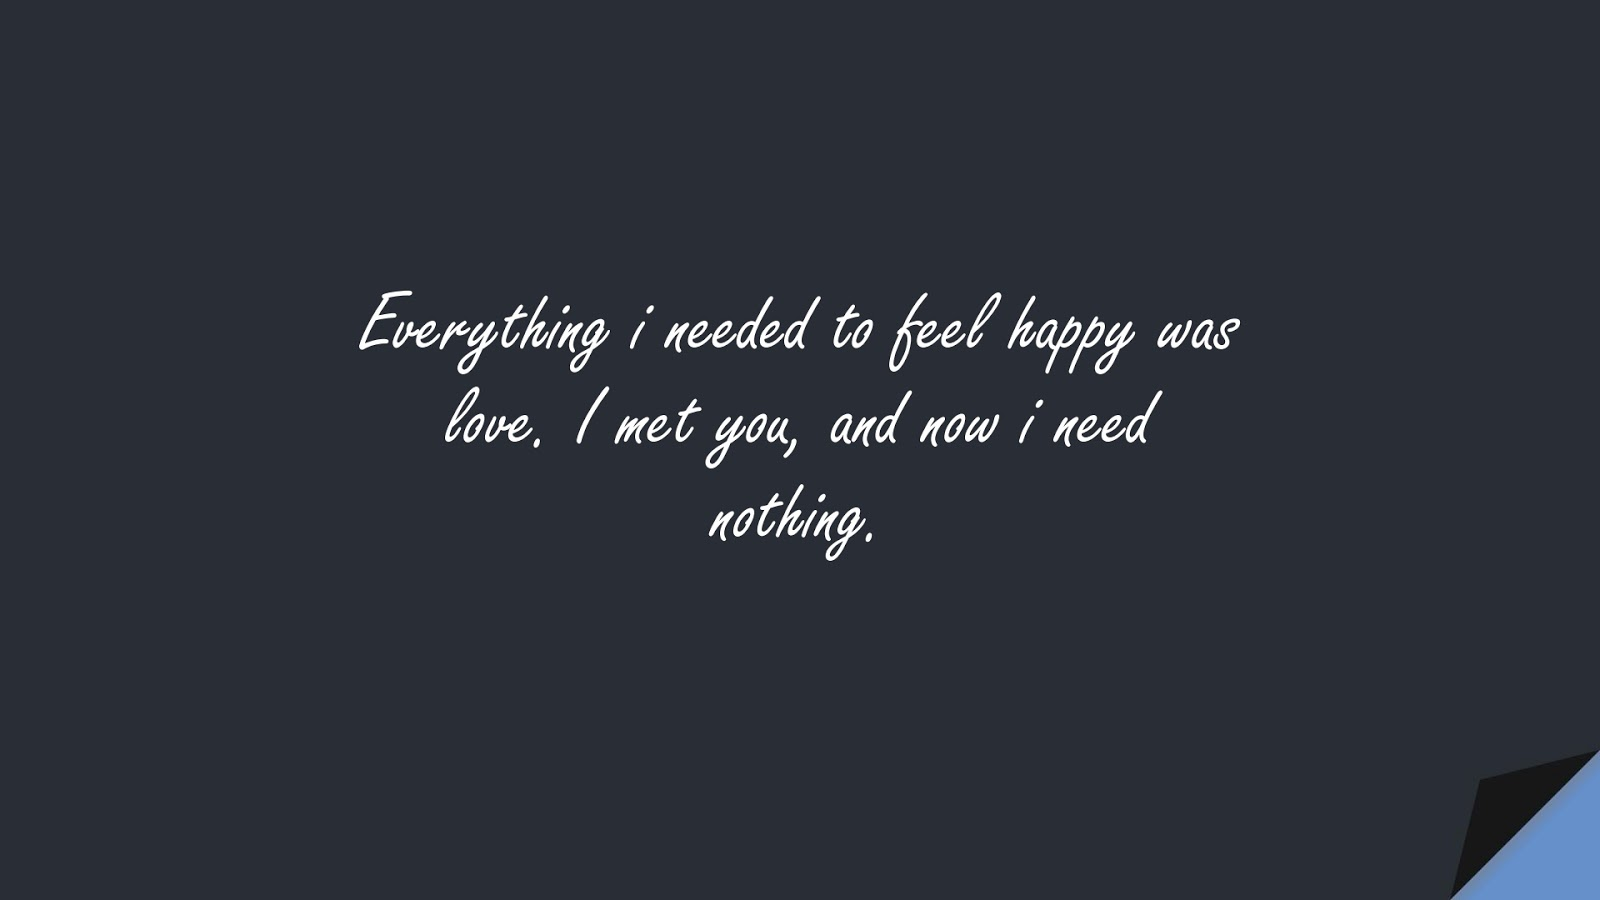 Everything i needed to feel happy was love. I met you, and now i need nothing.FALSE